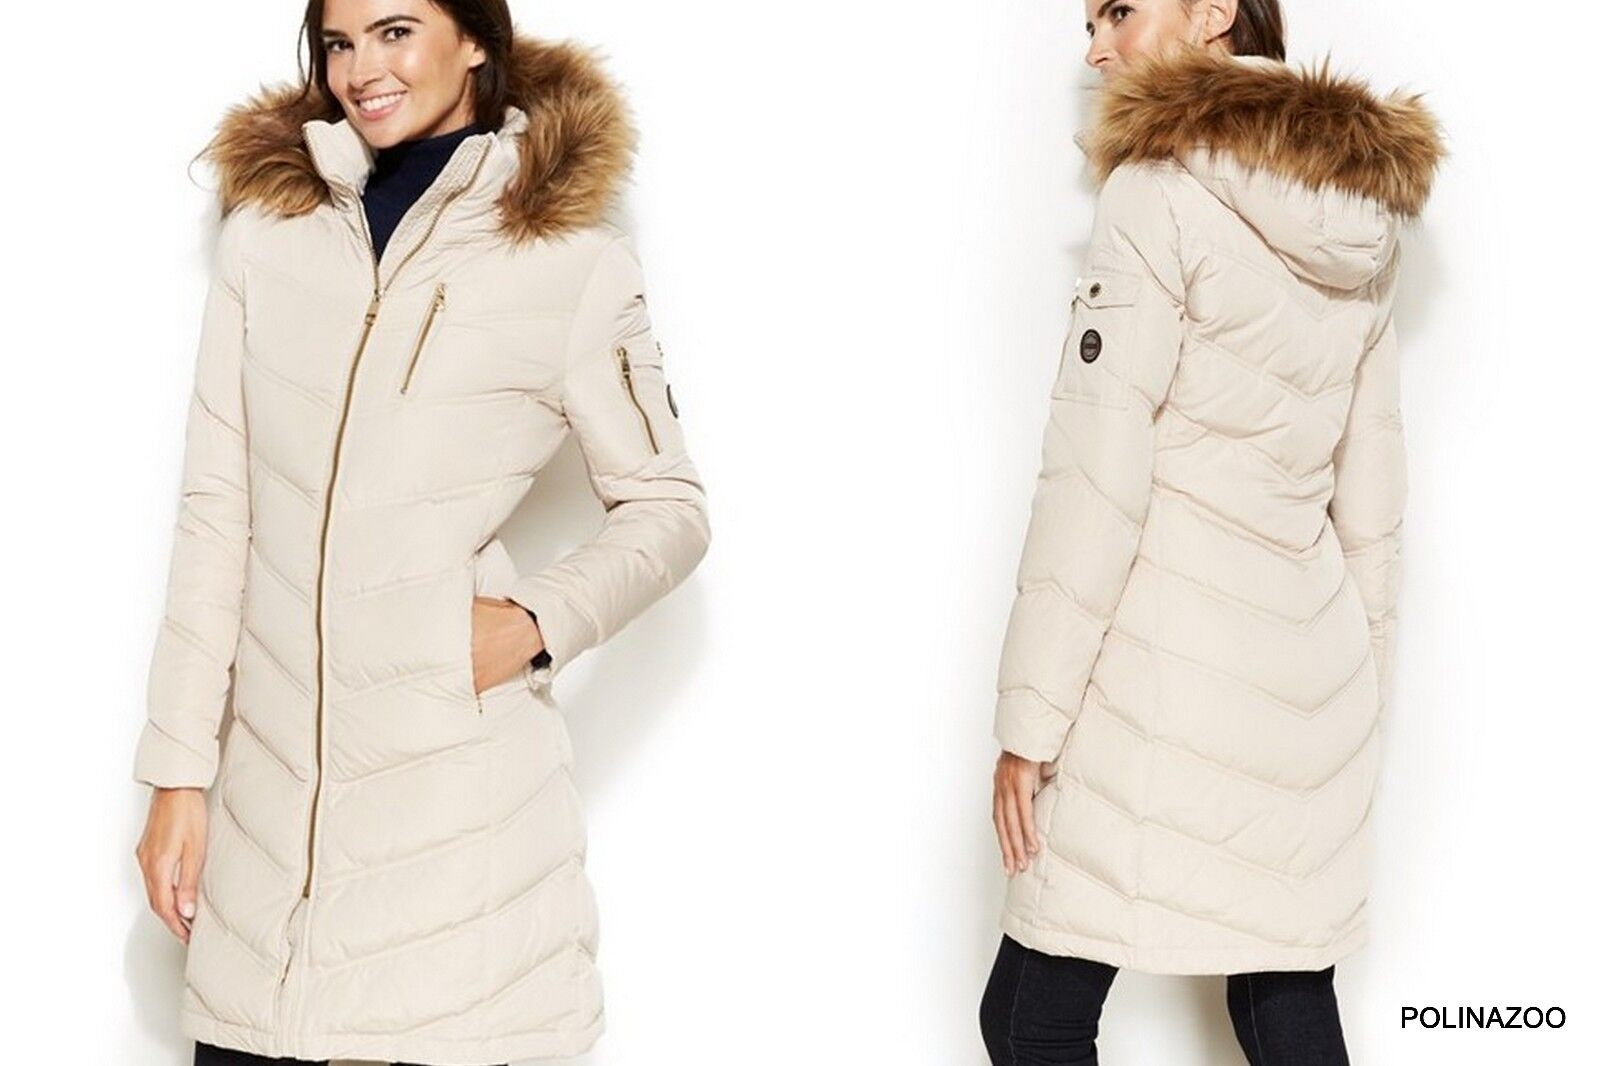 Overstock uses cookies to ensure you get the best experience on our site. If you continue on our site, you consent to the use of such cookies. Learn more. OK Coats. Clothing & Shoes / Women QZUnique Women Winter Warm Fluffy Faux Fur Coat Jacket Cardigan. New Arrival. Quick View.